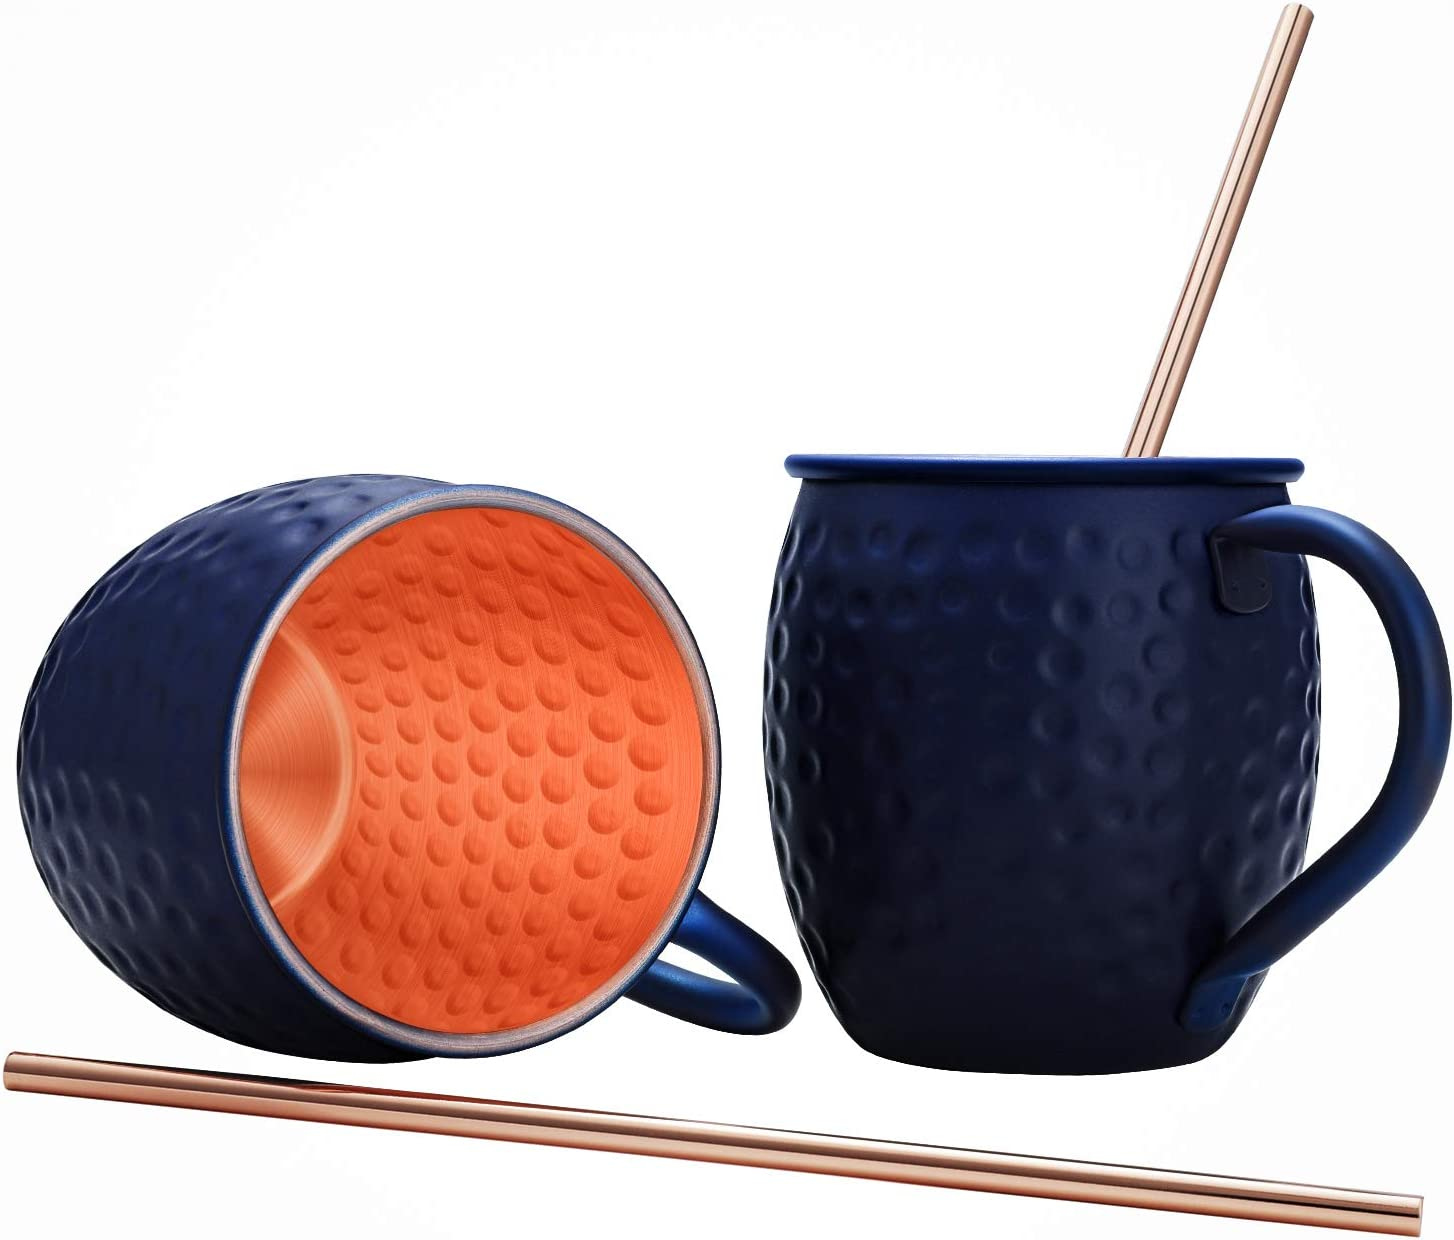 iHarbort Moscow Mule Copper Mugs, Set of 2, 16 oz, HandCrafted Food Safe Pure Solid Beer Mugs Wine Tumbler Cups Glasses, Gift Set With 2 Cocktail Copper Straws, Dark Blue